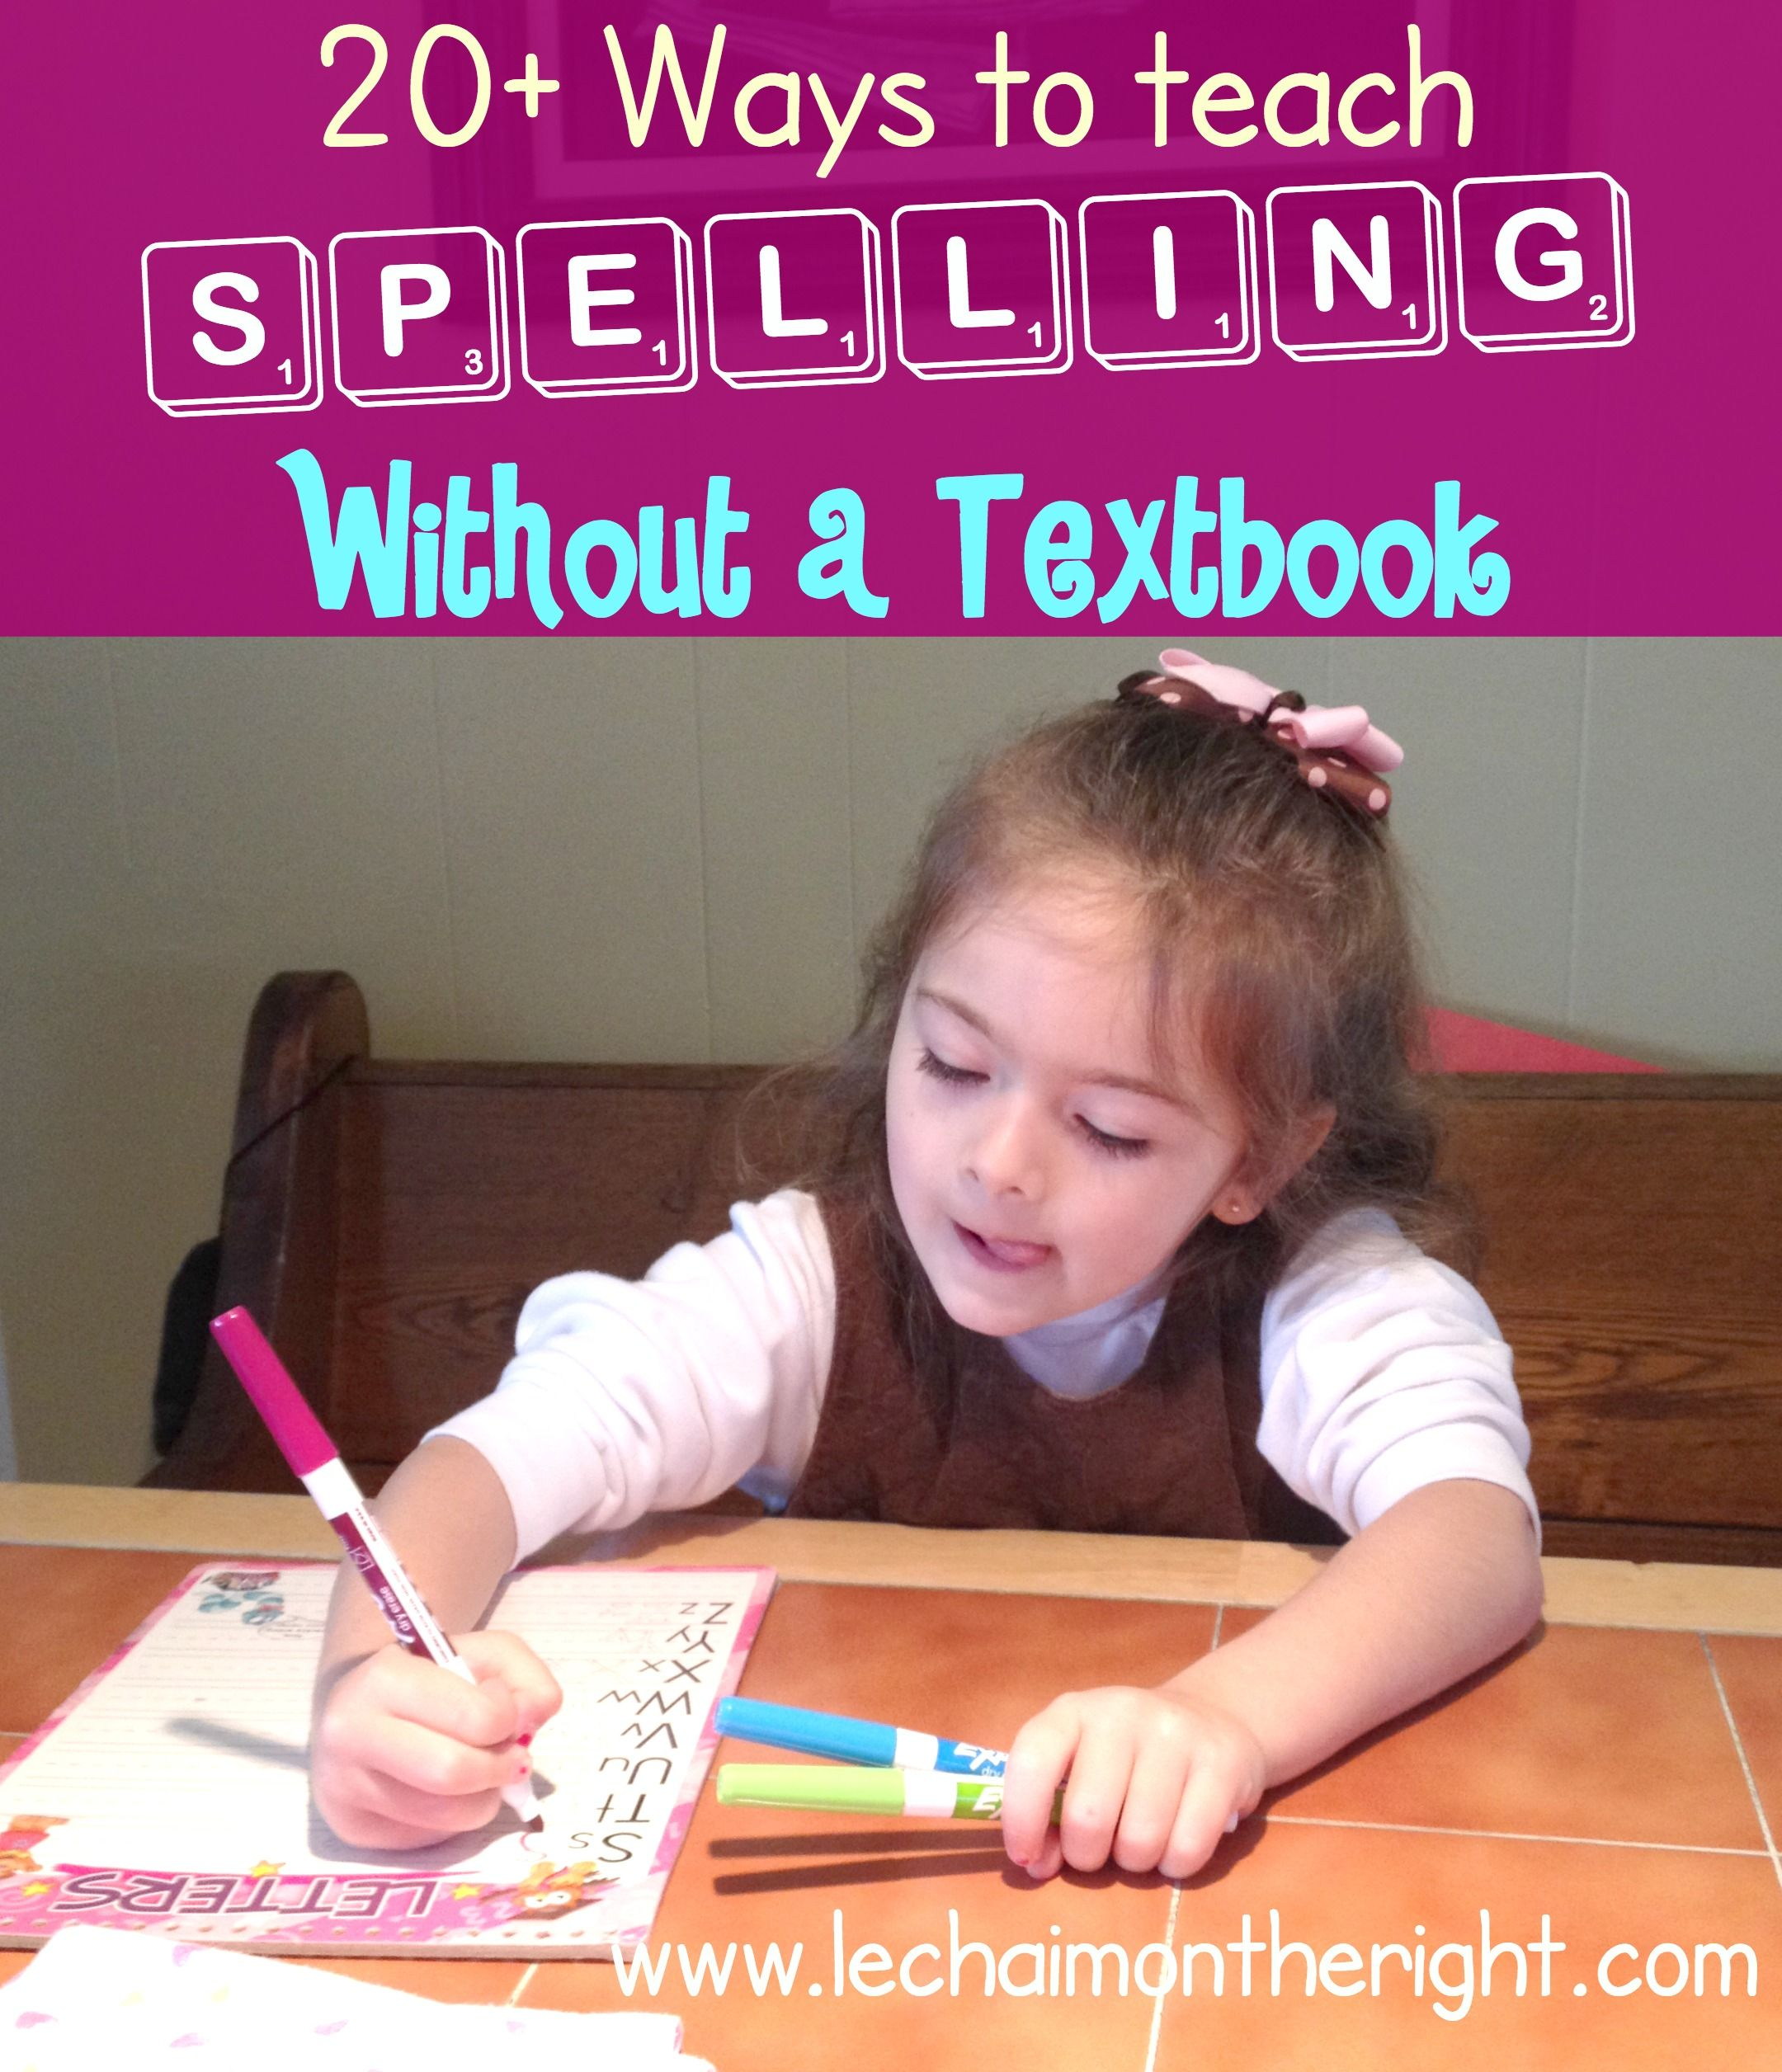 20+ Ways to Teach Spelling Without a Textbook